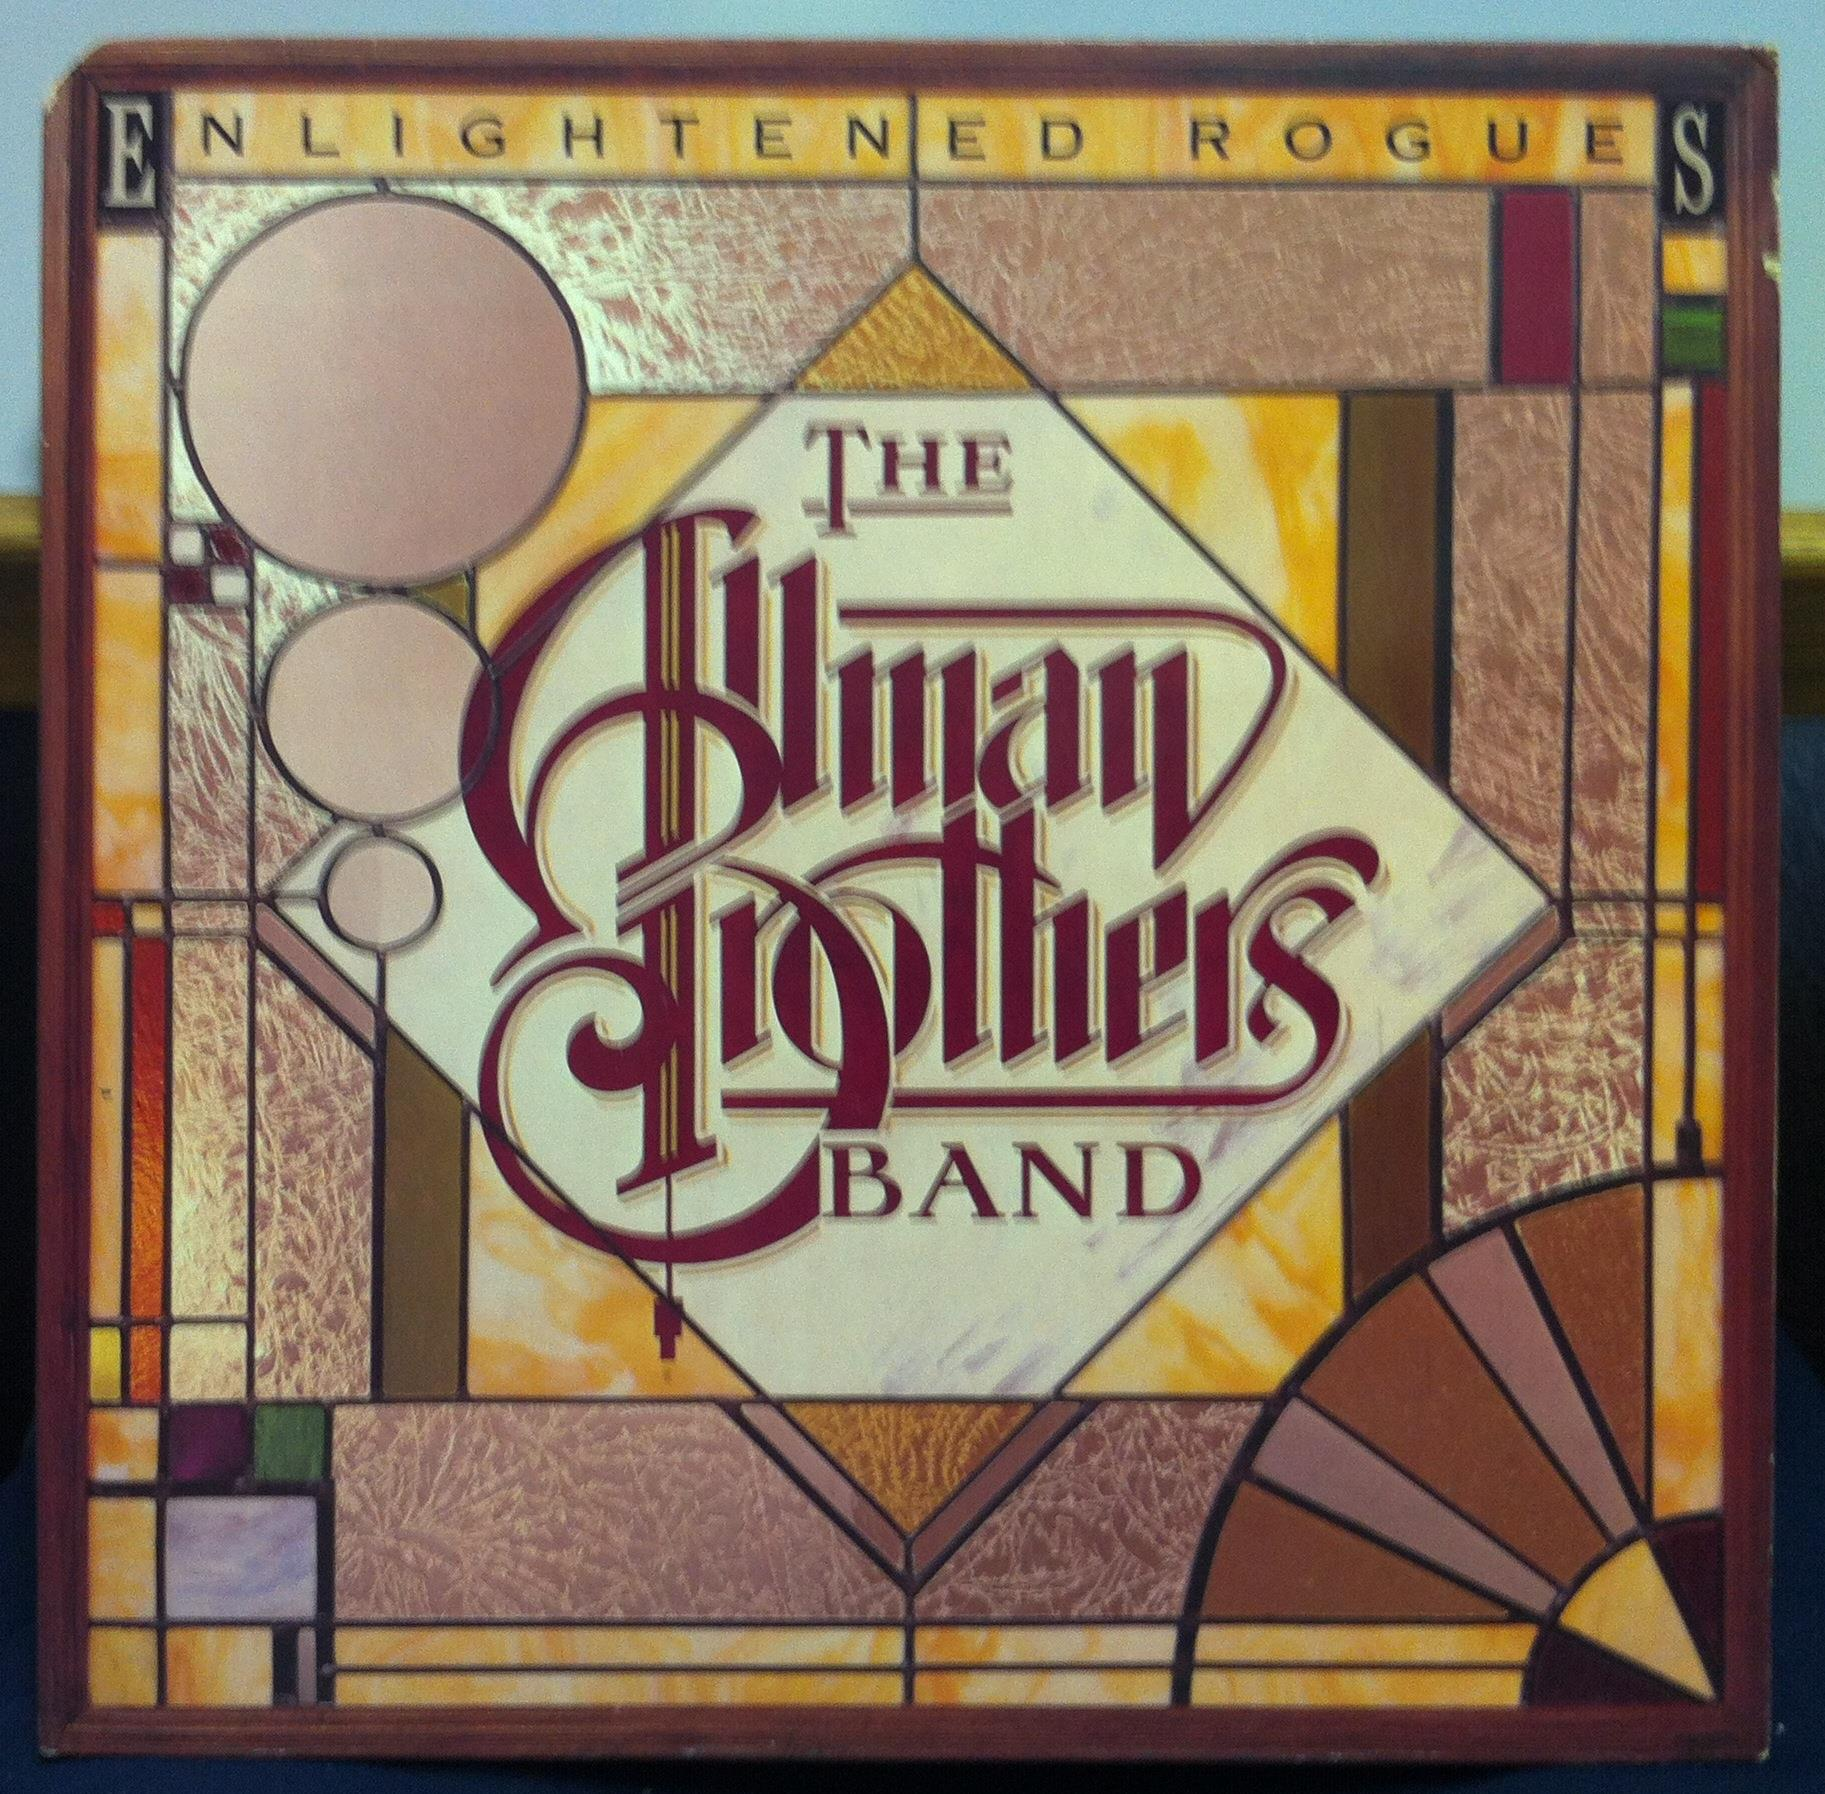 ALLMAN BROTHERS BAND - The Allman Brothers Band Enlightened Rogues Lp Vg+ Cpn 0218 Vinyl 1979 Record (enlightened Rogues)